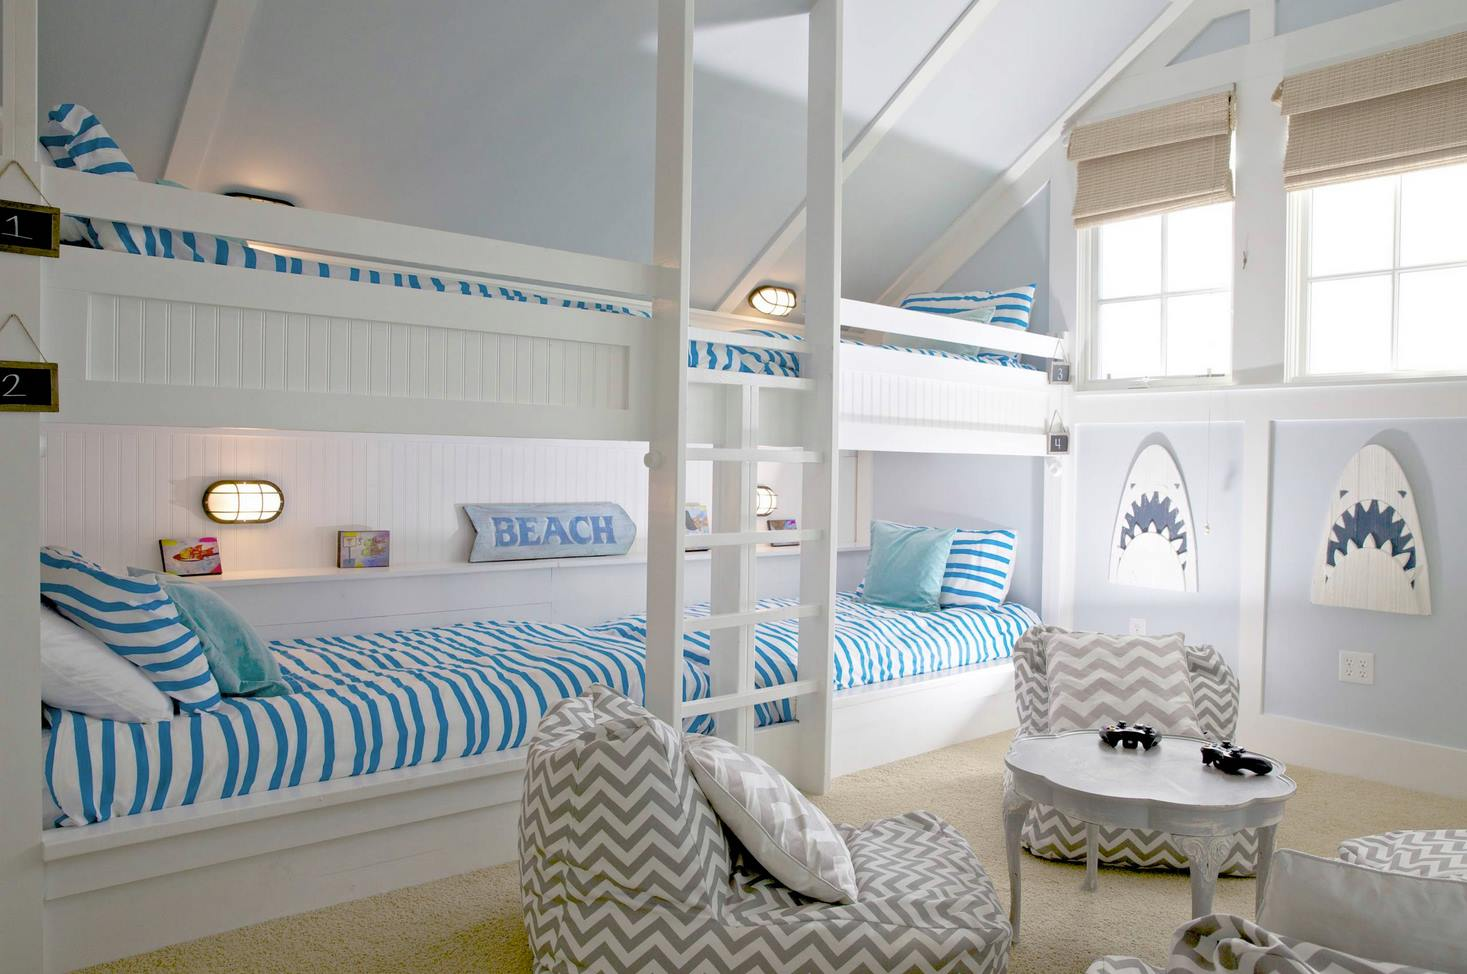 Beach – Shark Bedroom Theme Teen bedroom room ideas # 27